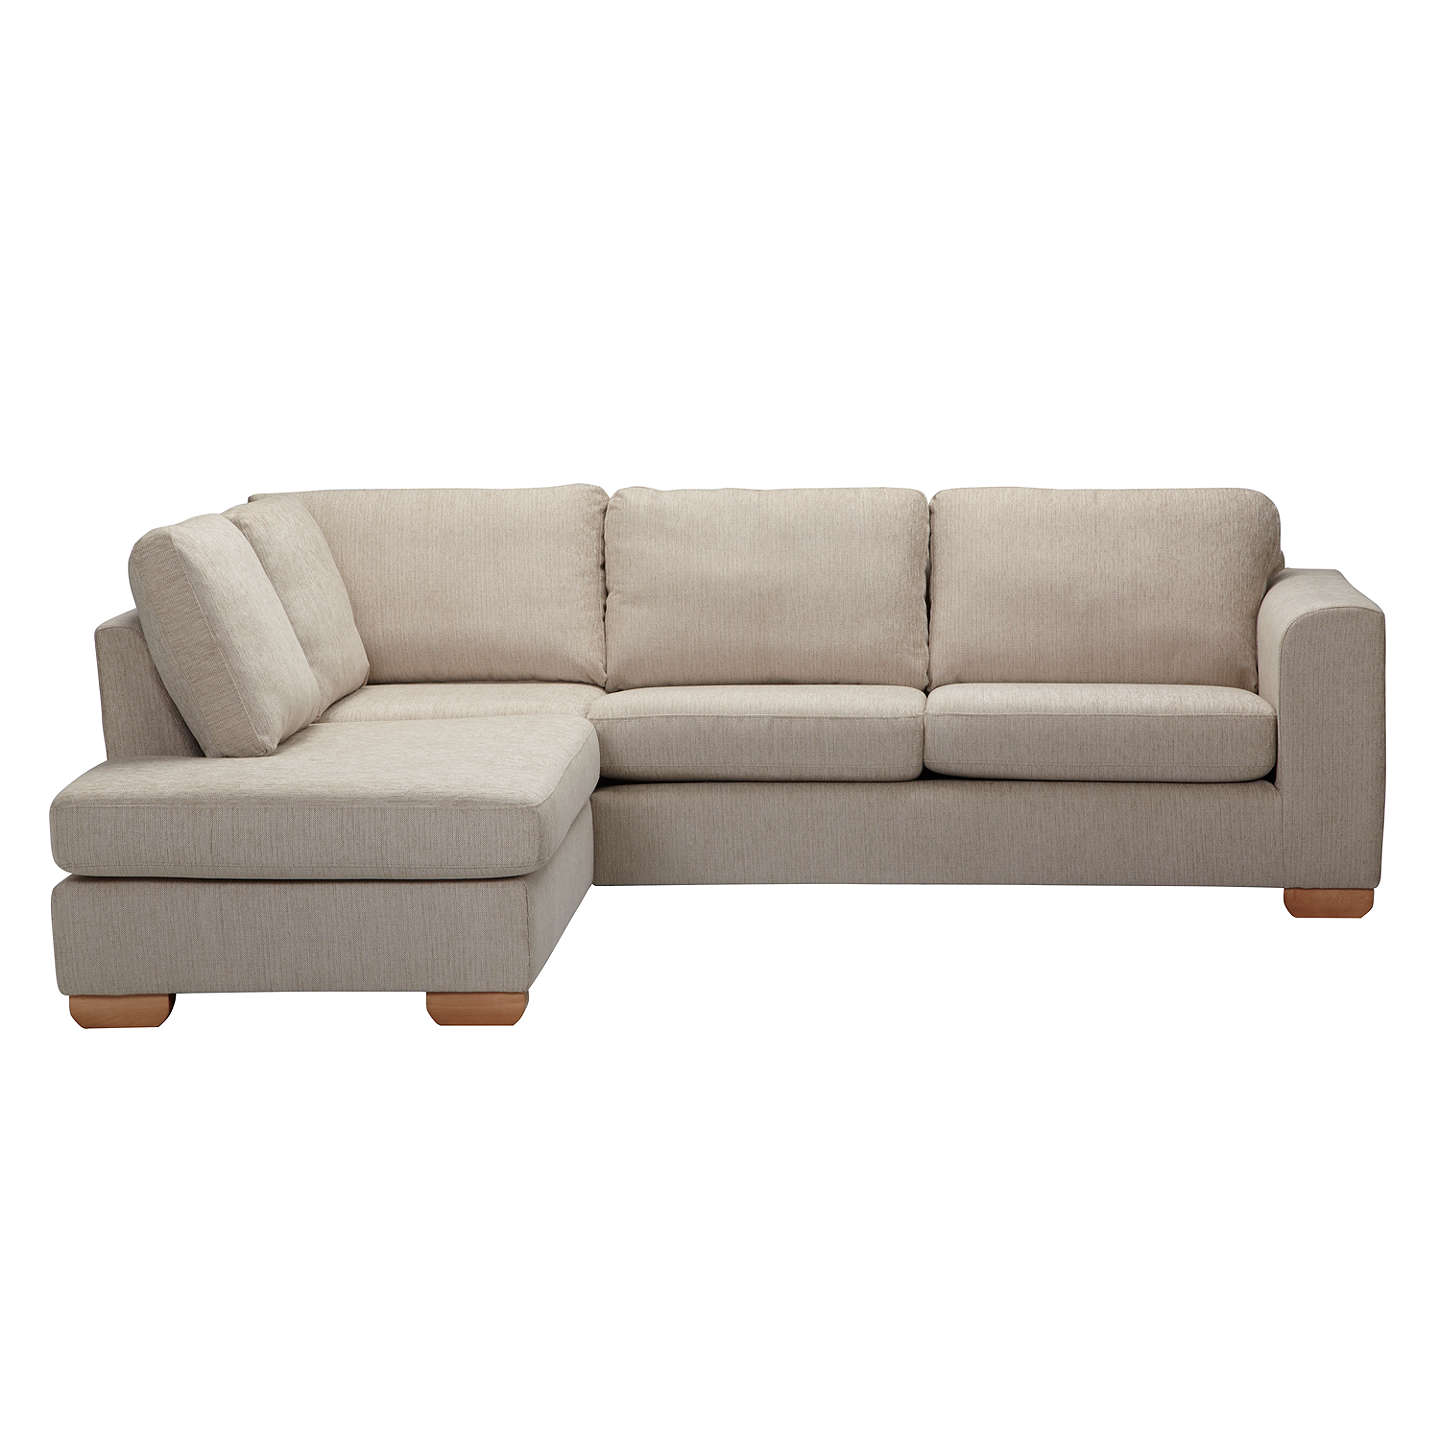 John Lewis Cooper Corner Sofa: John Lewis Felix LHF Corner Chaise End Sofa With Light